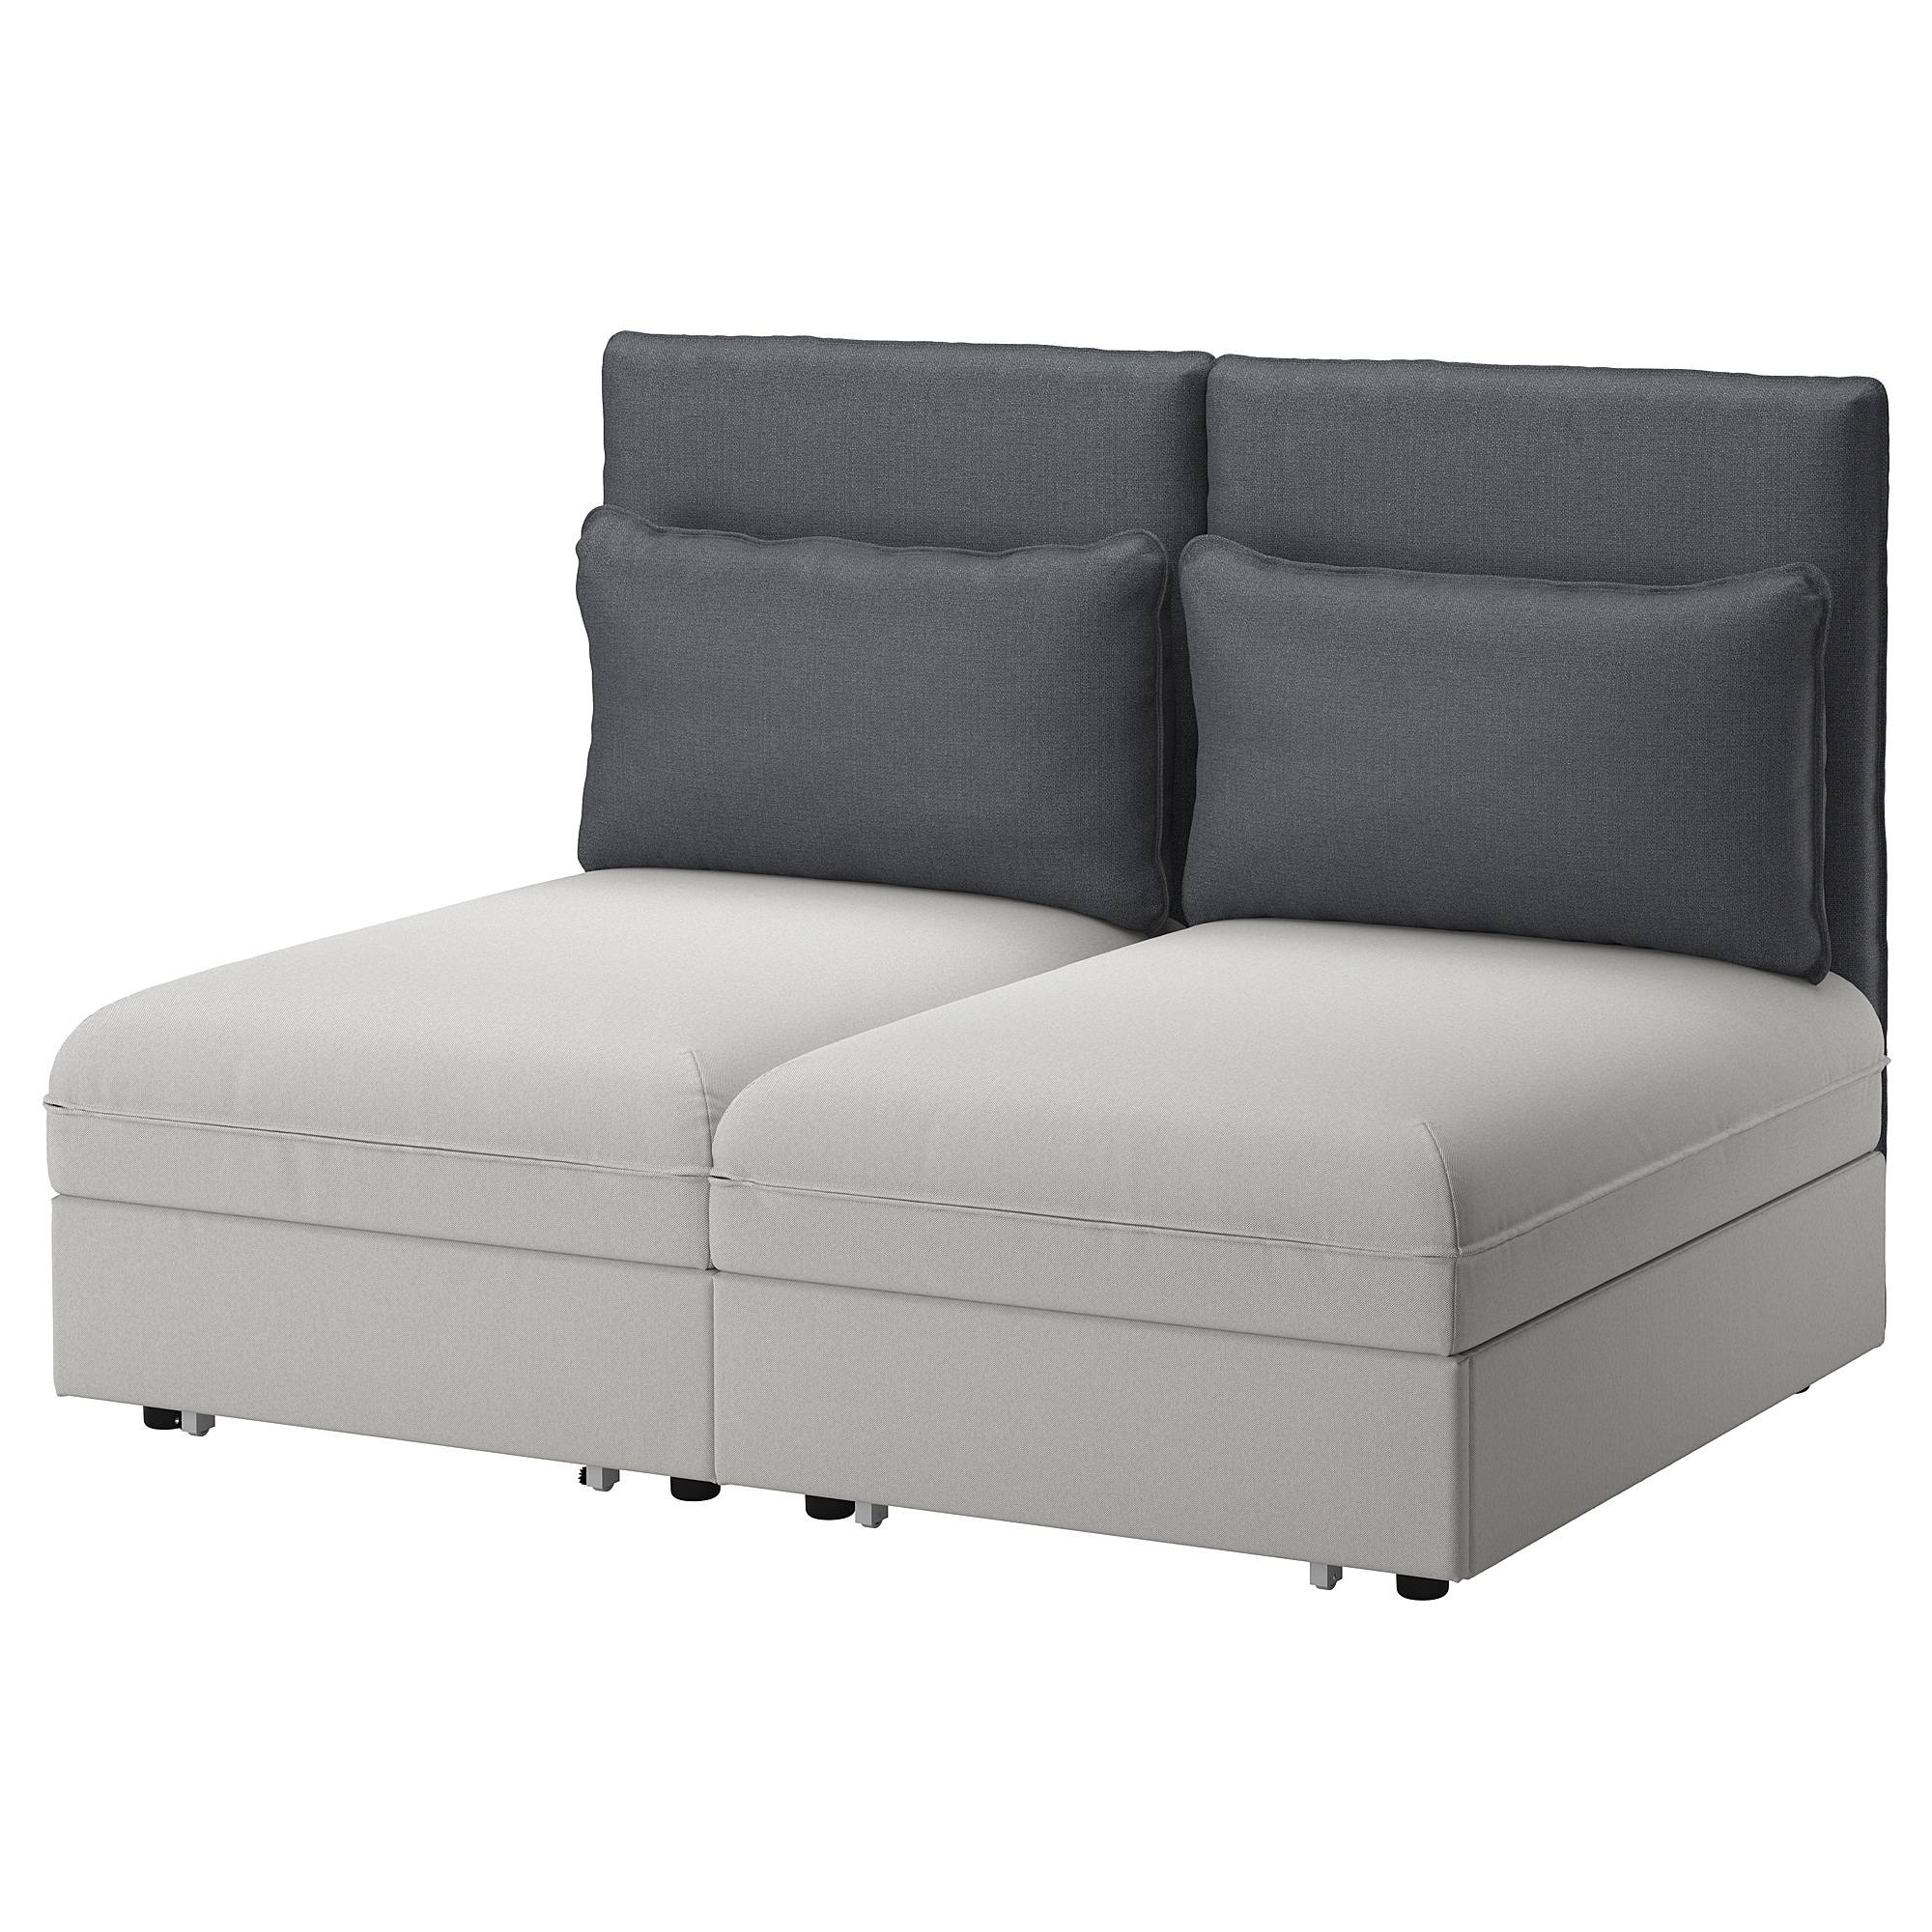 Sofa Beds & Futons - Ikea throughout Ikea Sectional Sofa Sleeper (Image 20 of 25)